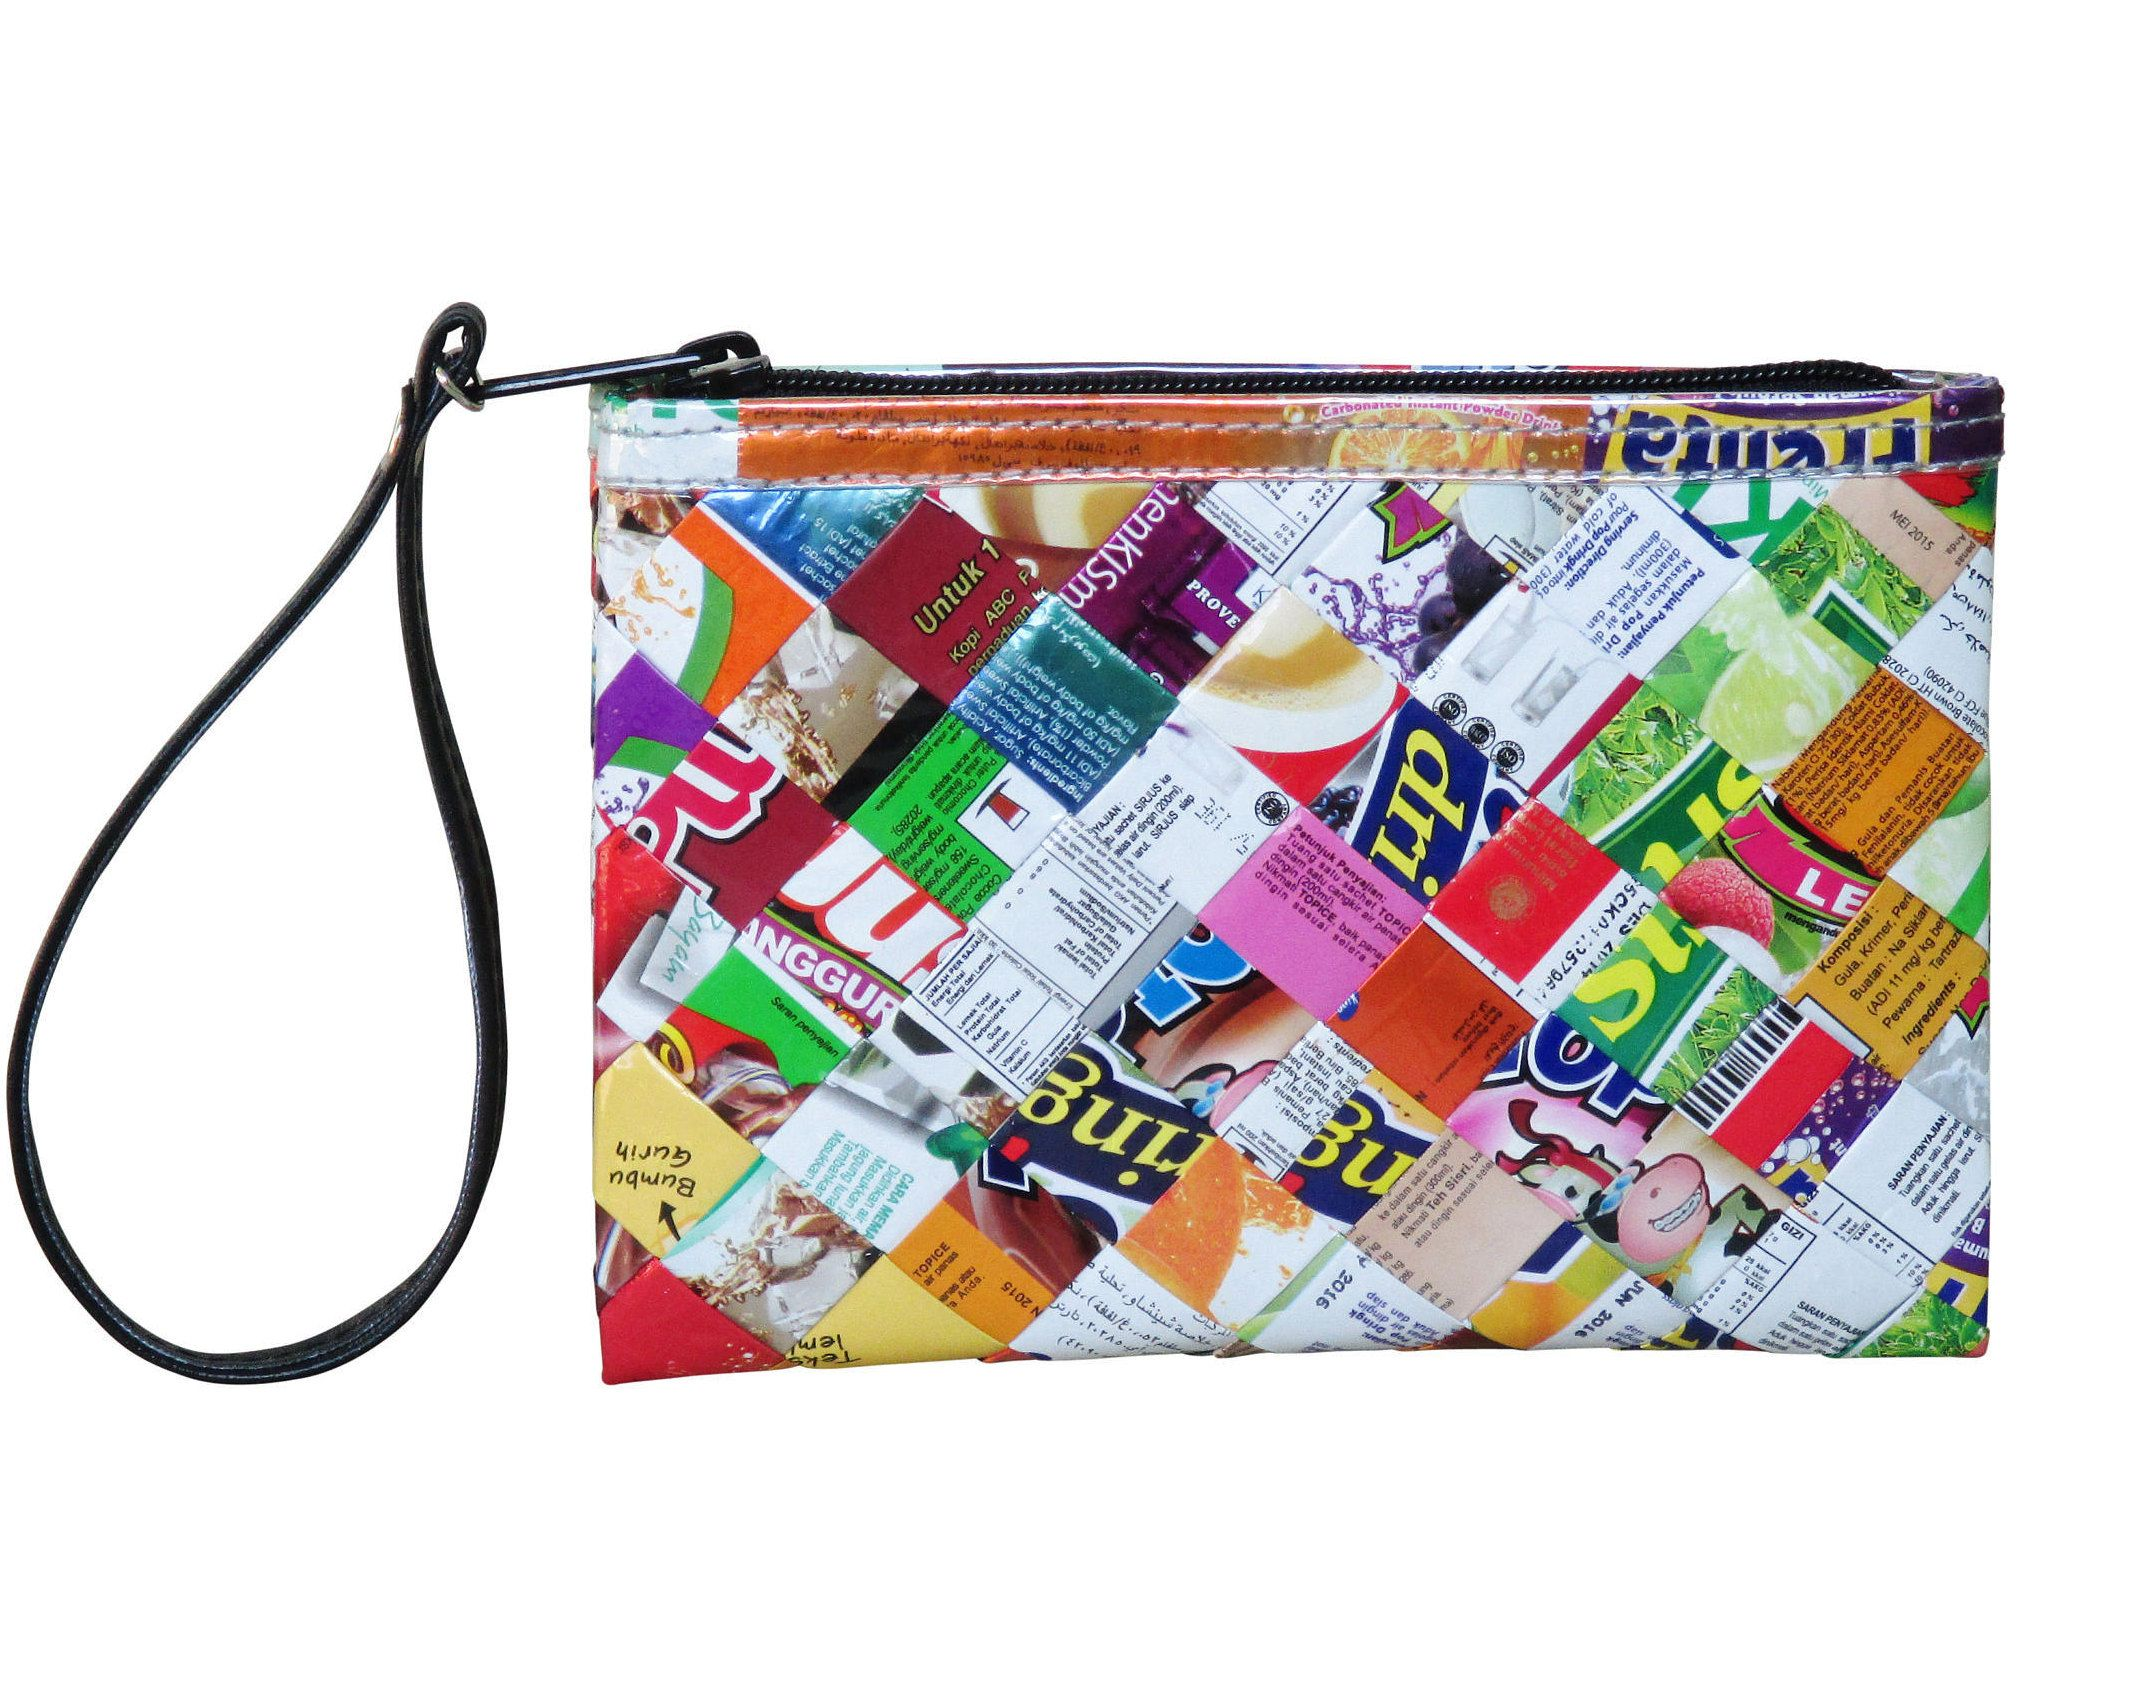 Small colorful wristlet made from street ad banner FREE SHIPPING Coin Wallet vegan zipper Bag t ideas for ve arians vegans upcycled of